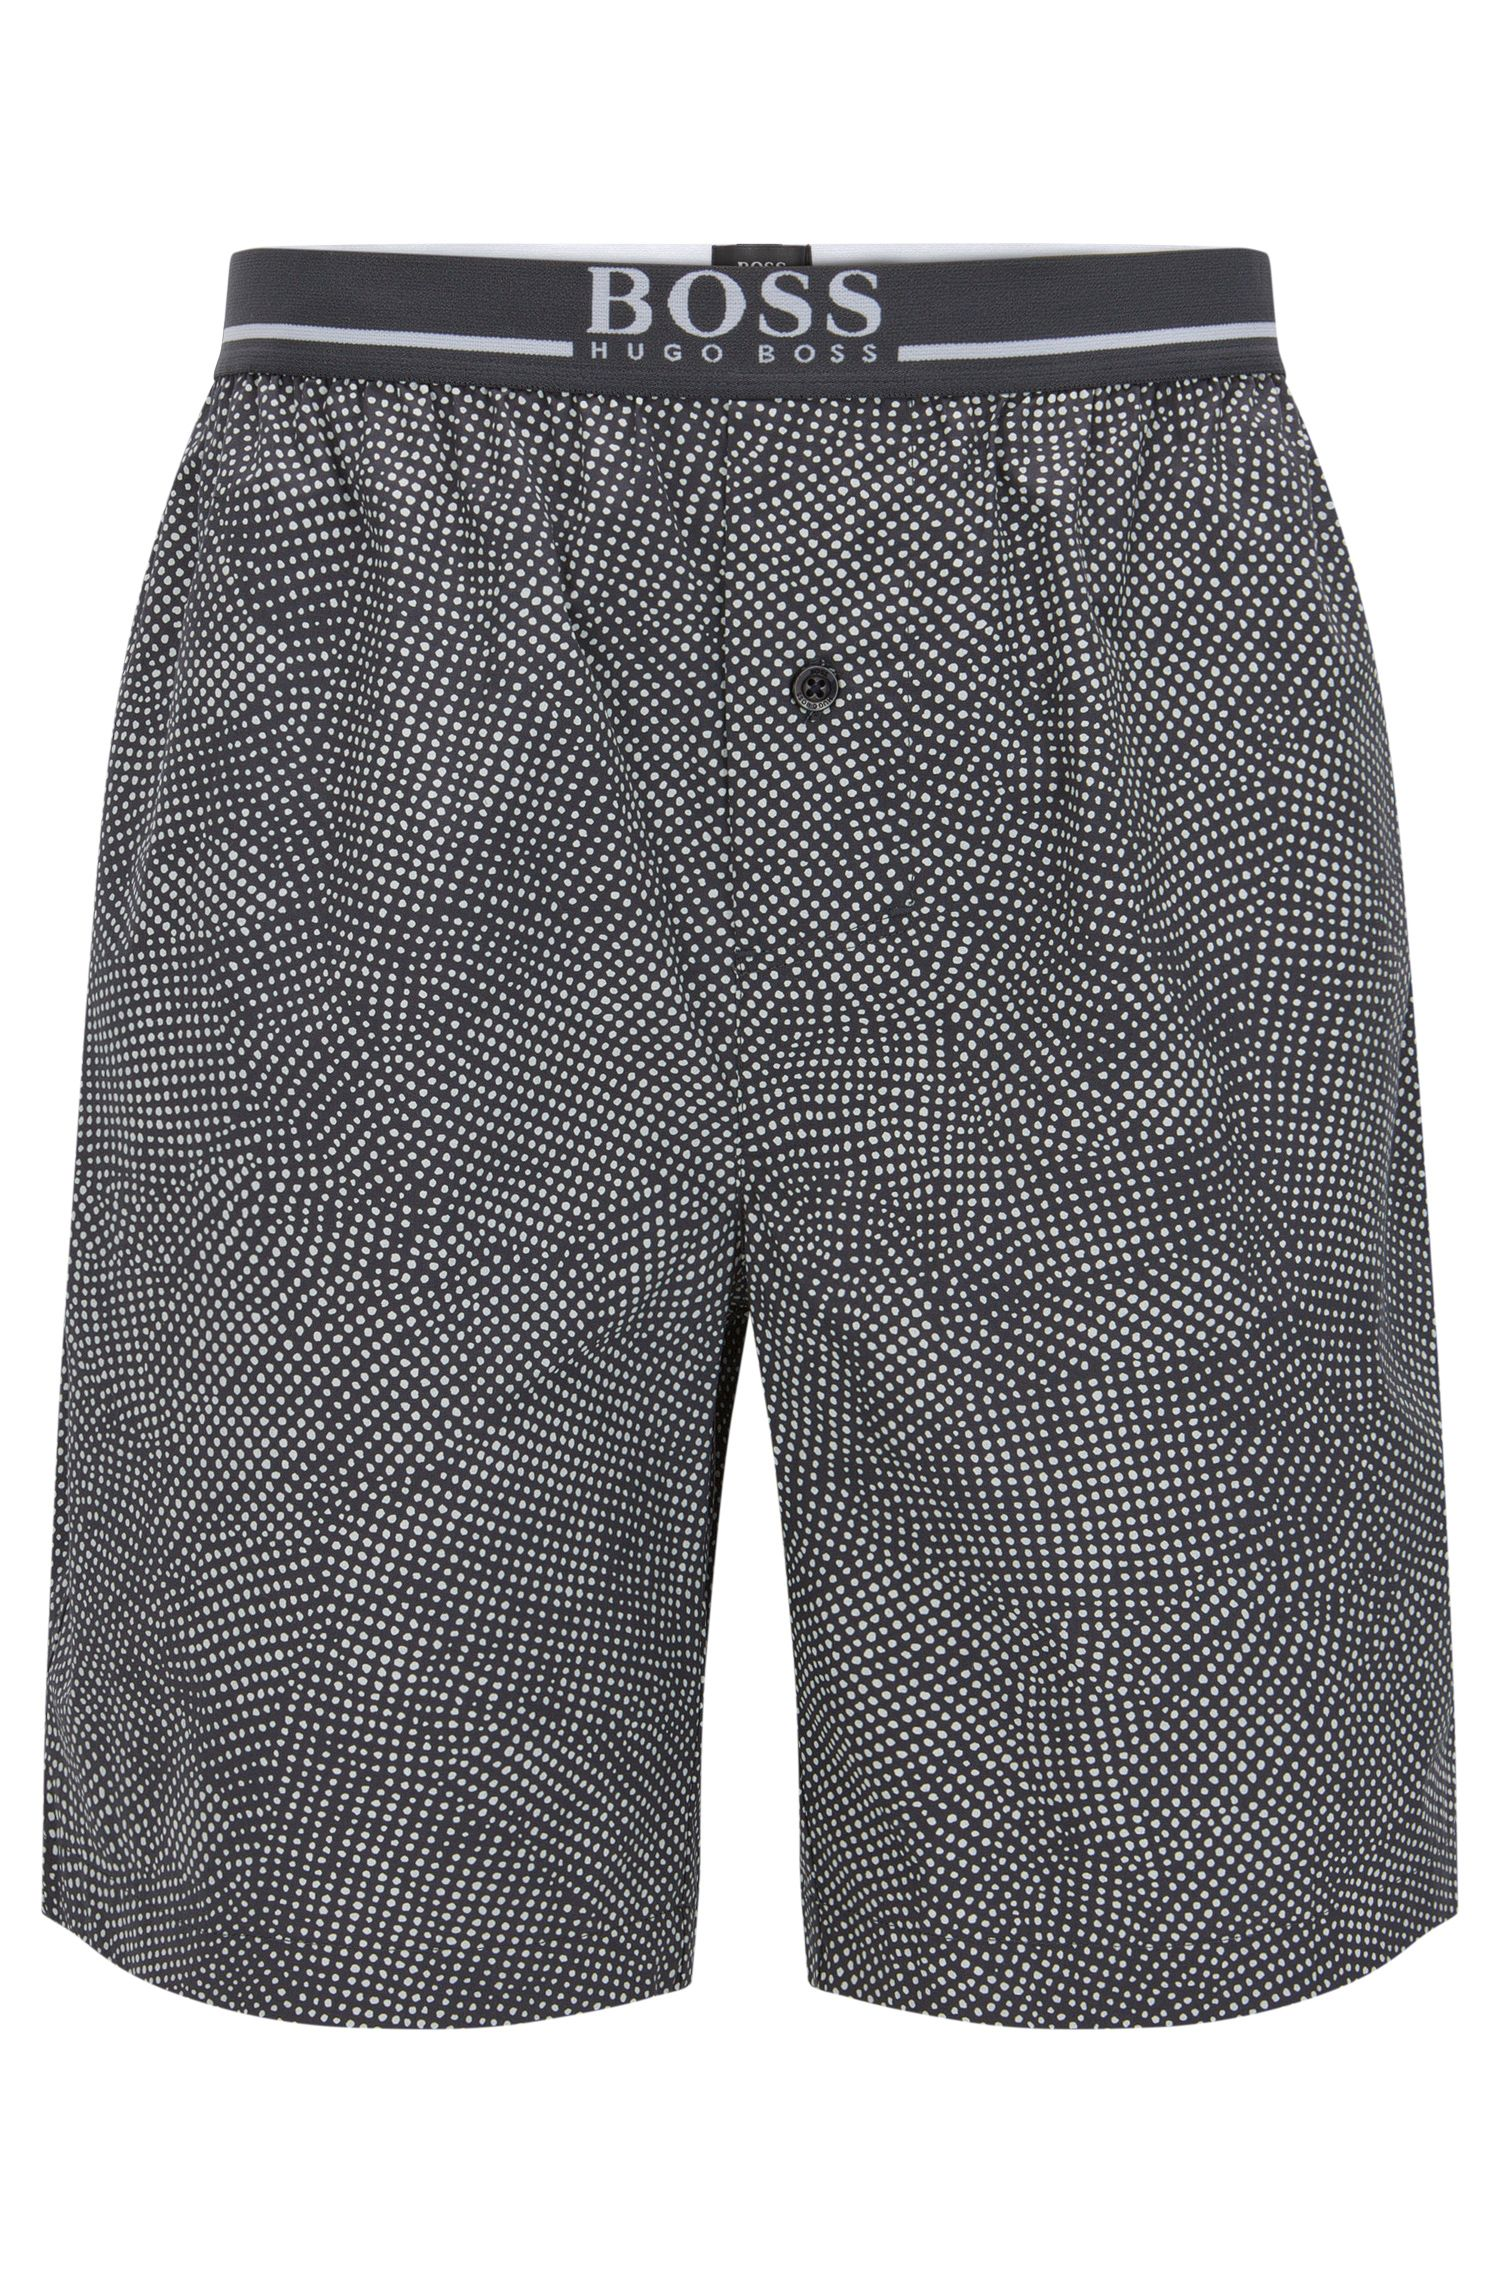 Pyjama shorts in cotton with exposed waistband